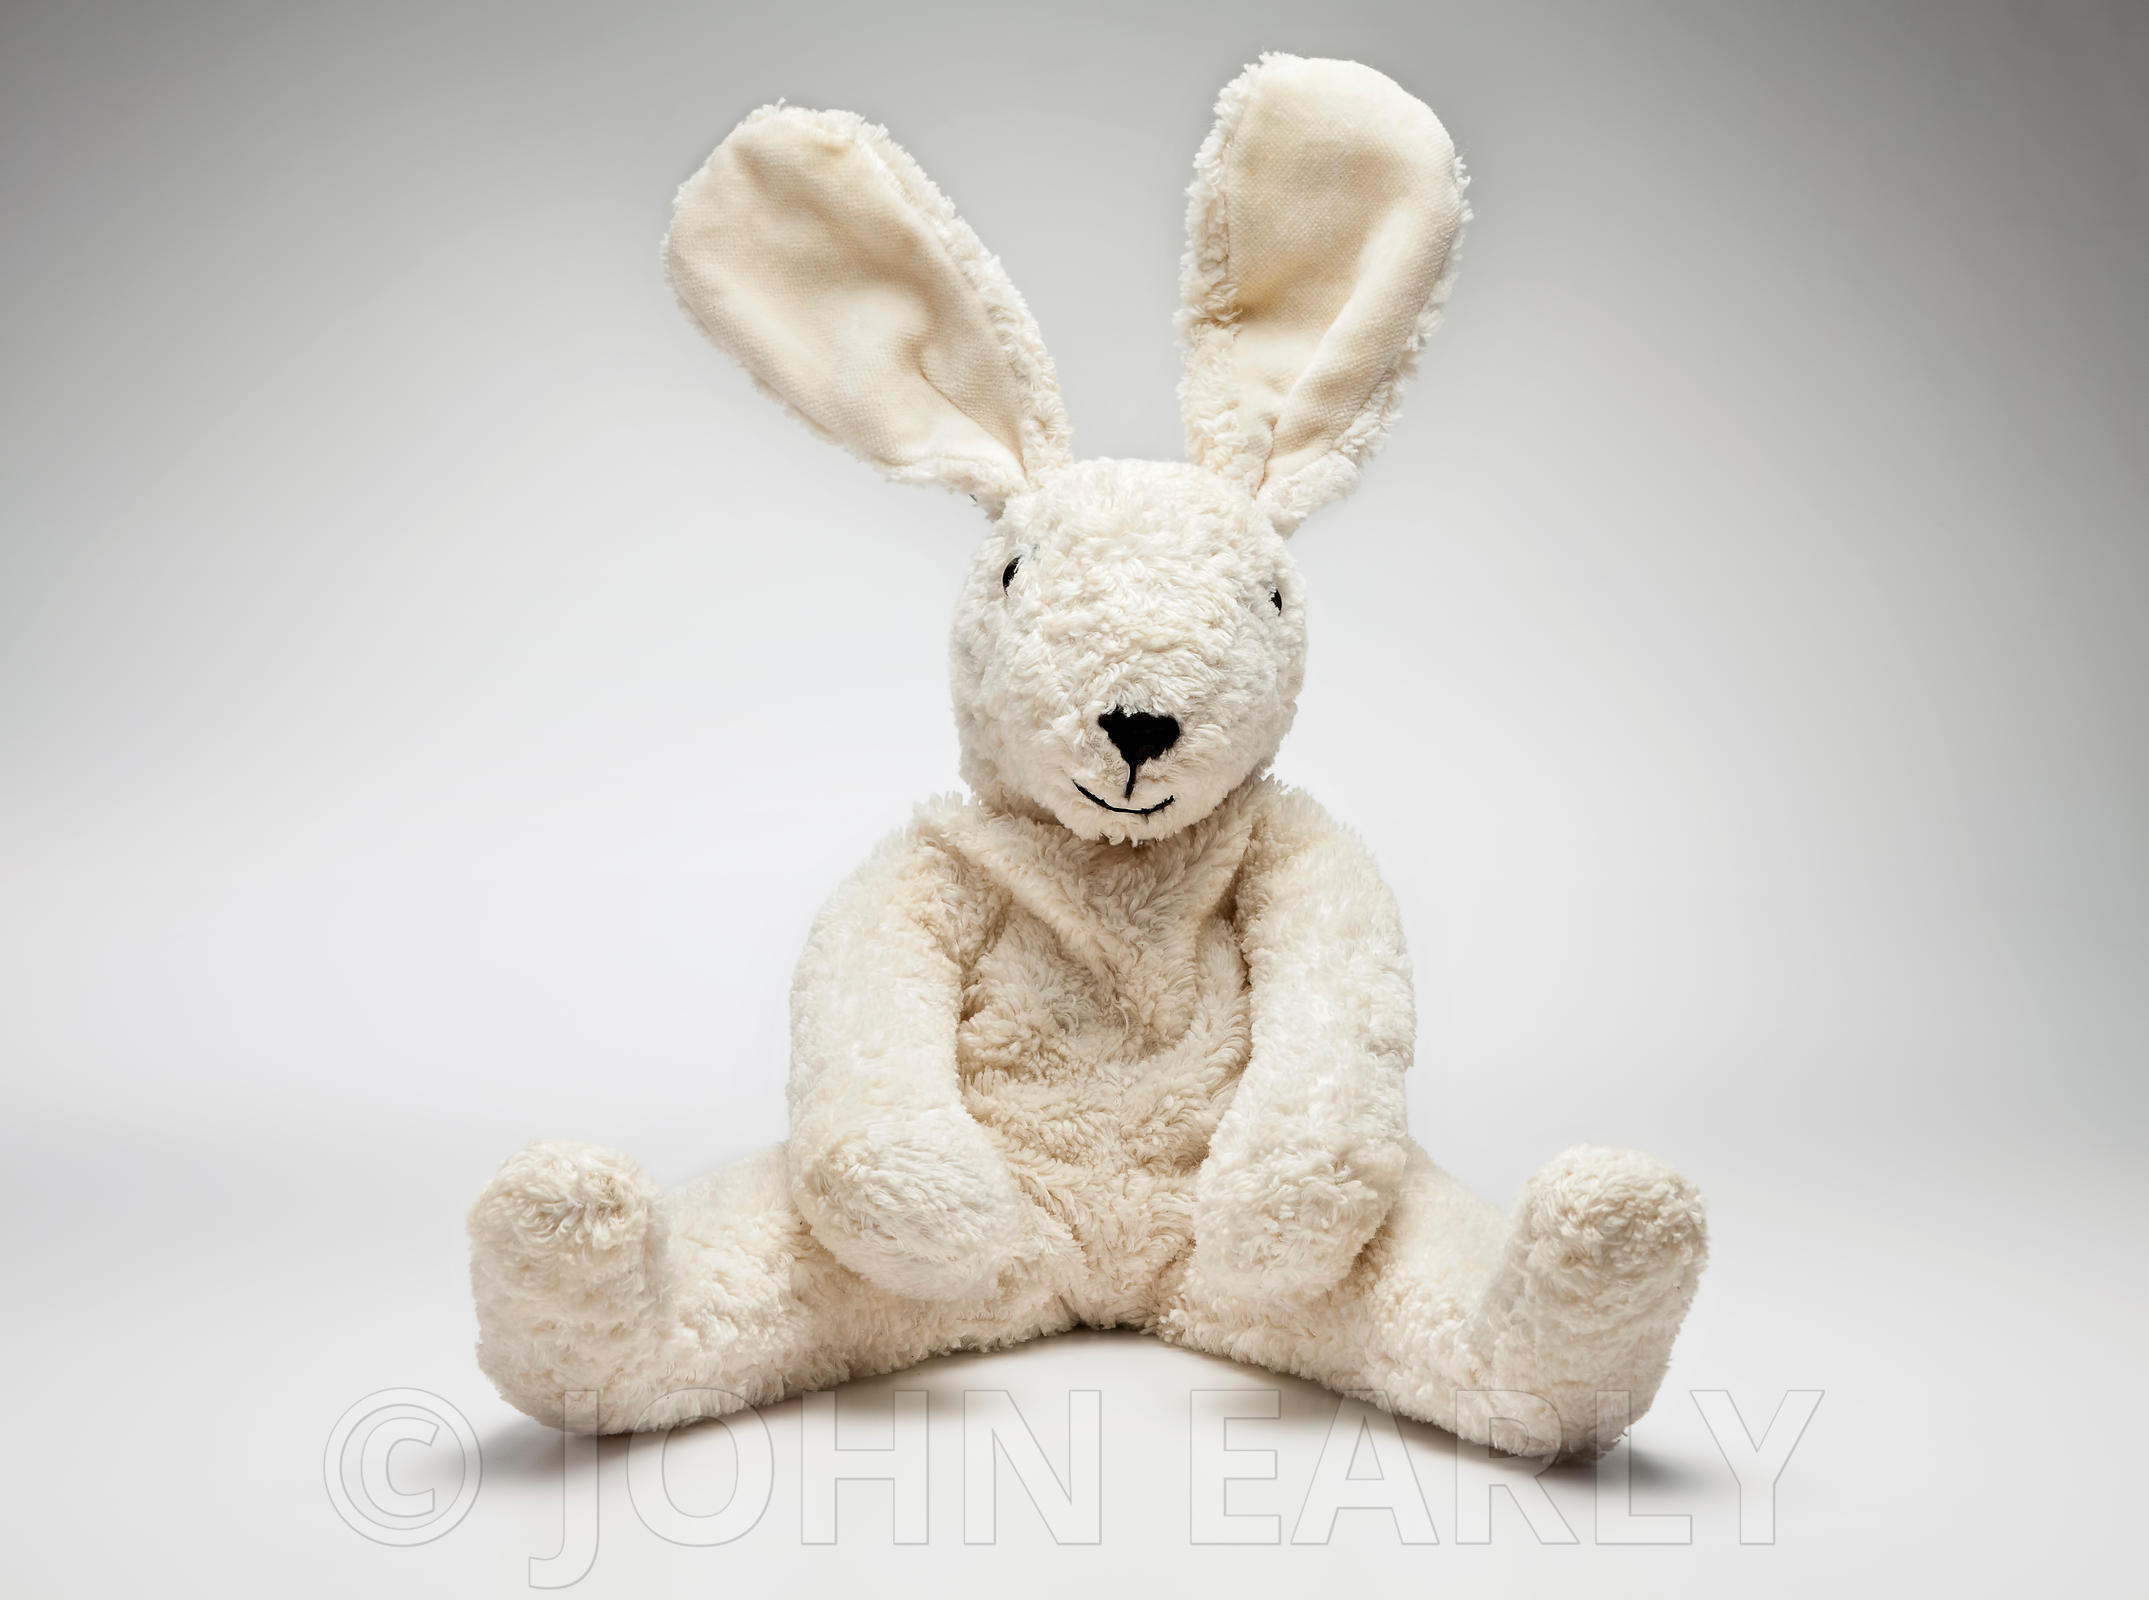 Stuffed Toy (Bunny Rabbit) On White Pose #4